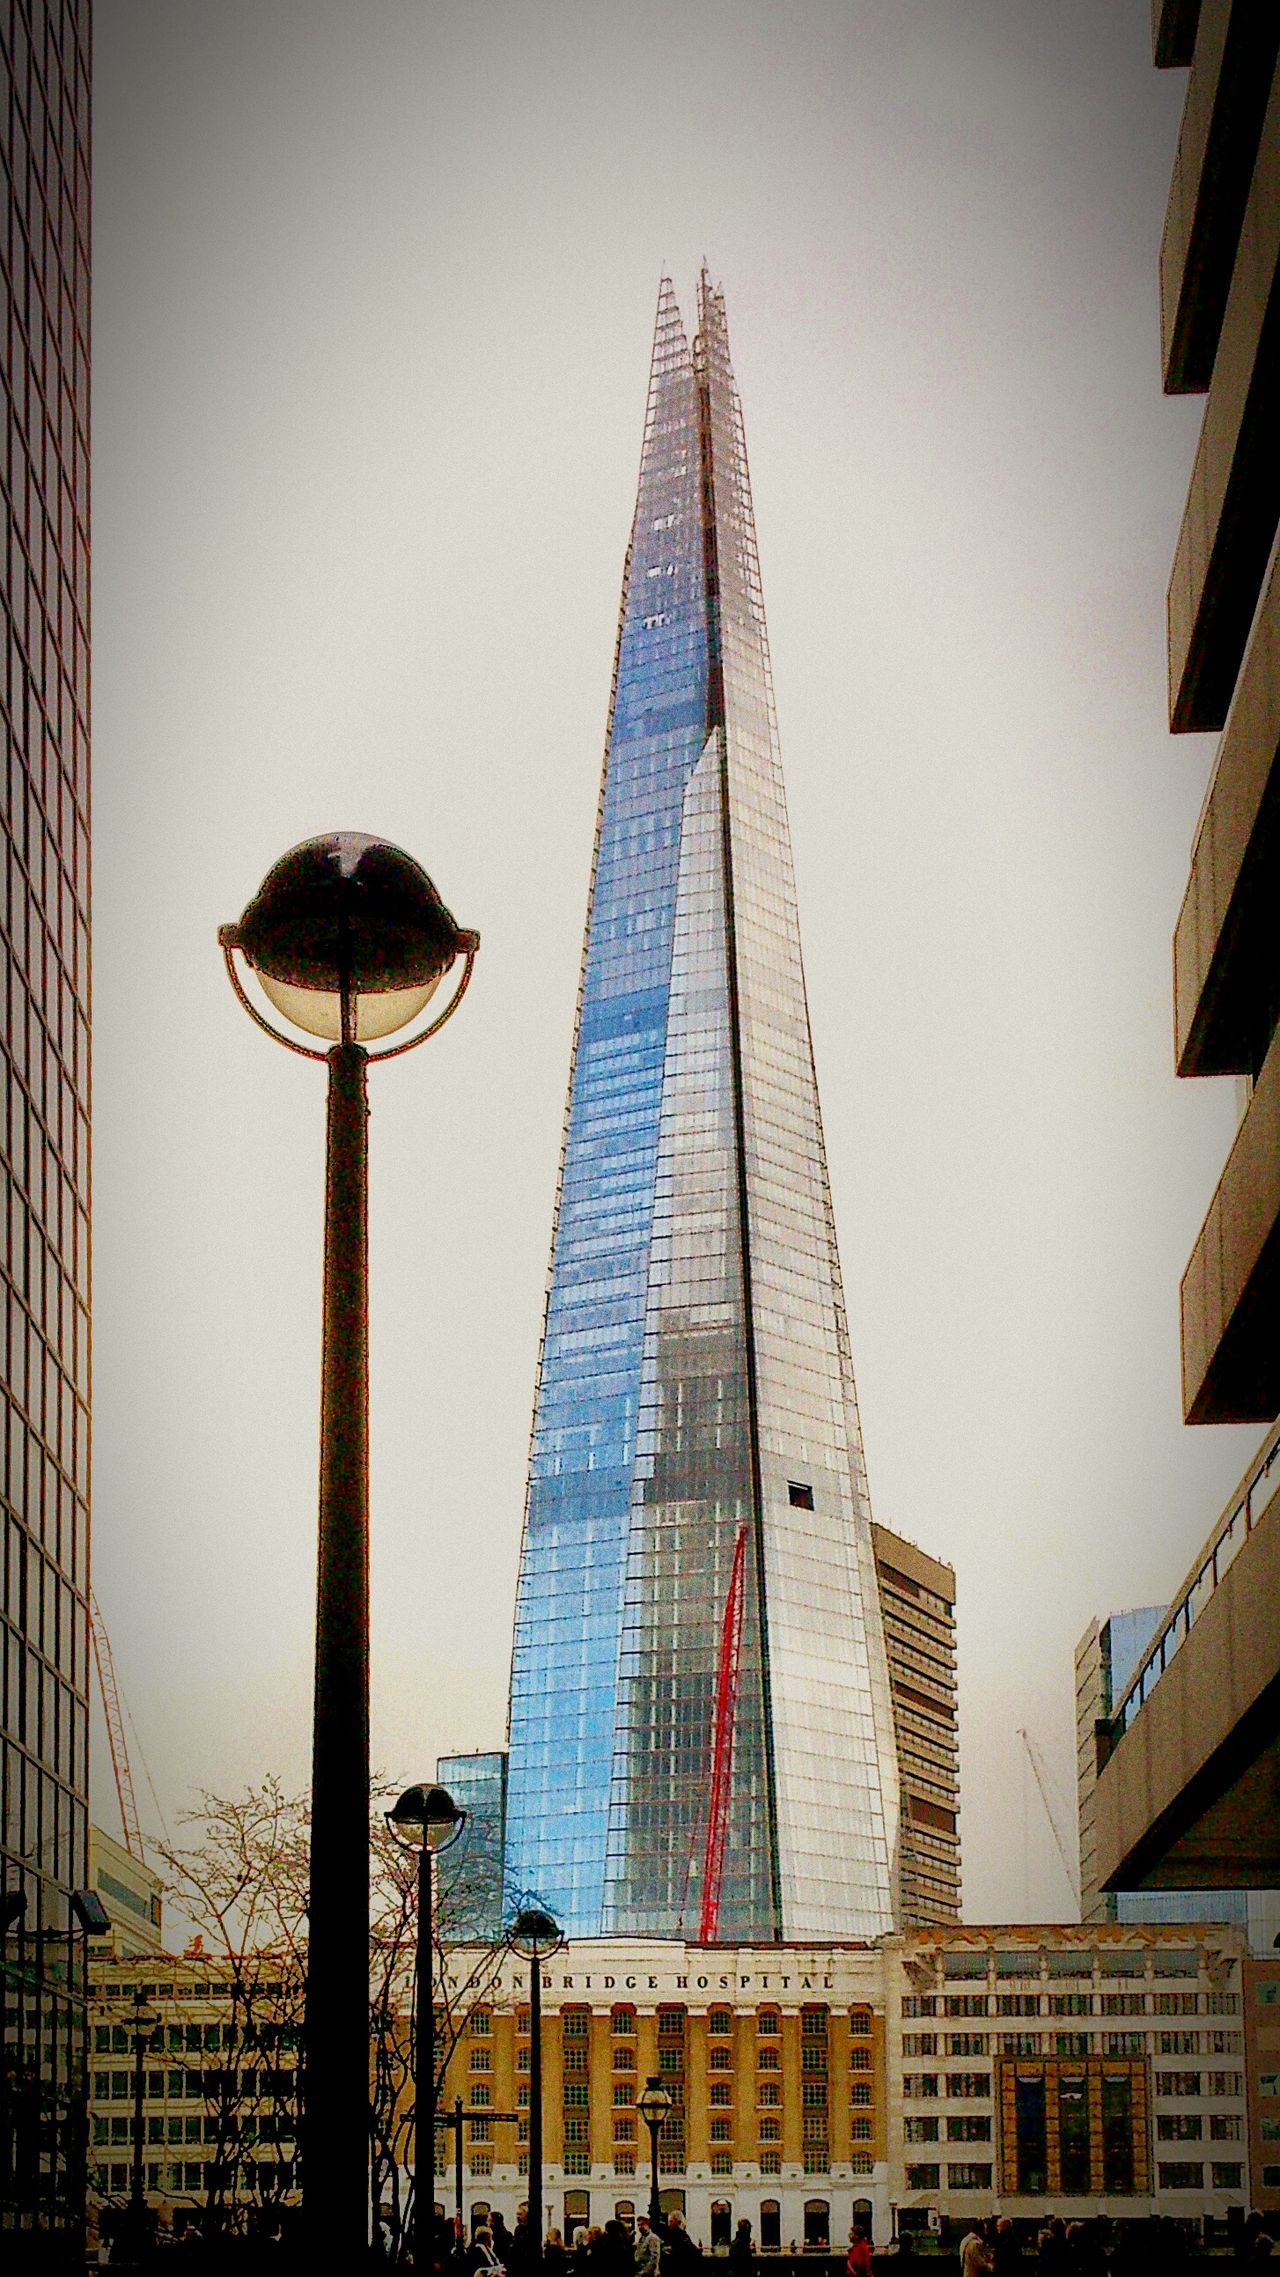 'Bowlers' The Shard, London London Bridge Hospital Street Photography Urban Landscape Mobile Photography Cityscapes Urban Geometry Urbanphotography Seeing The Sights